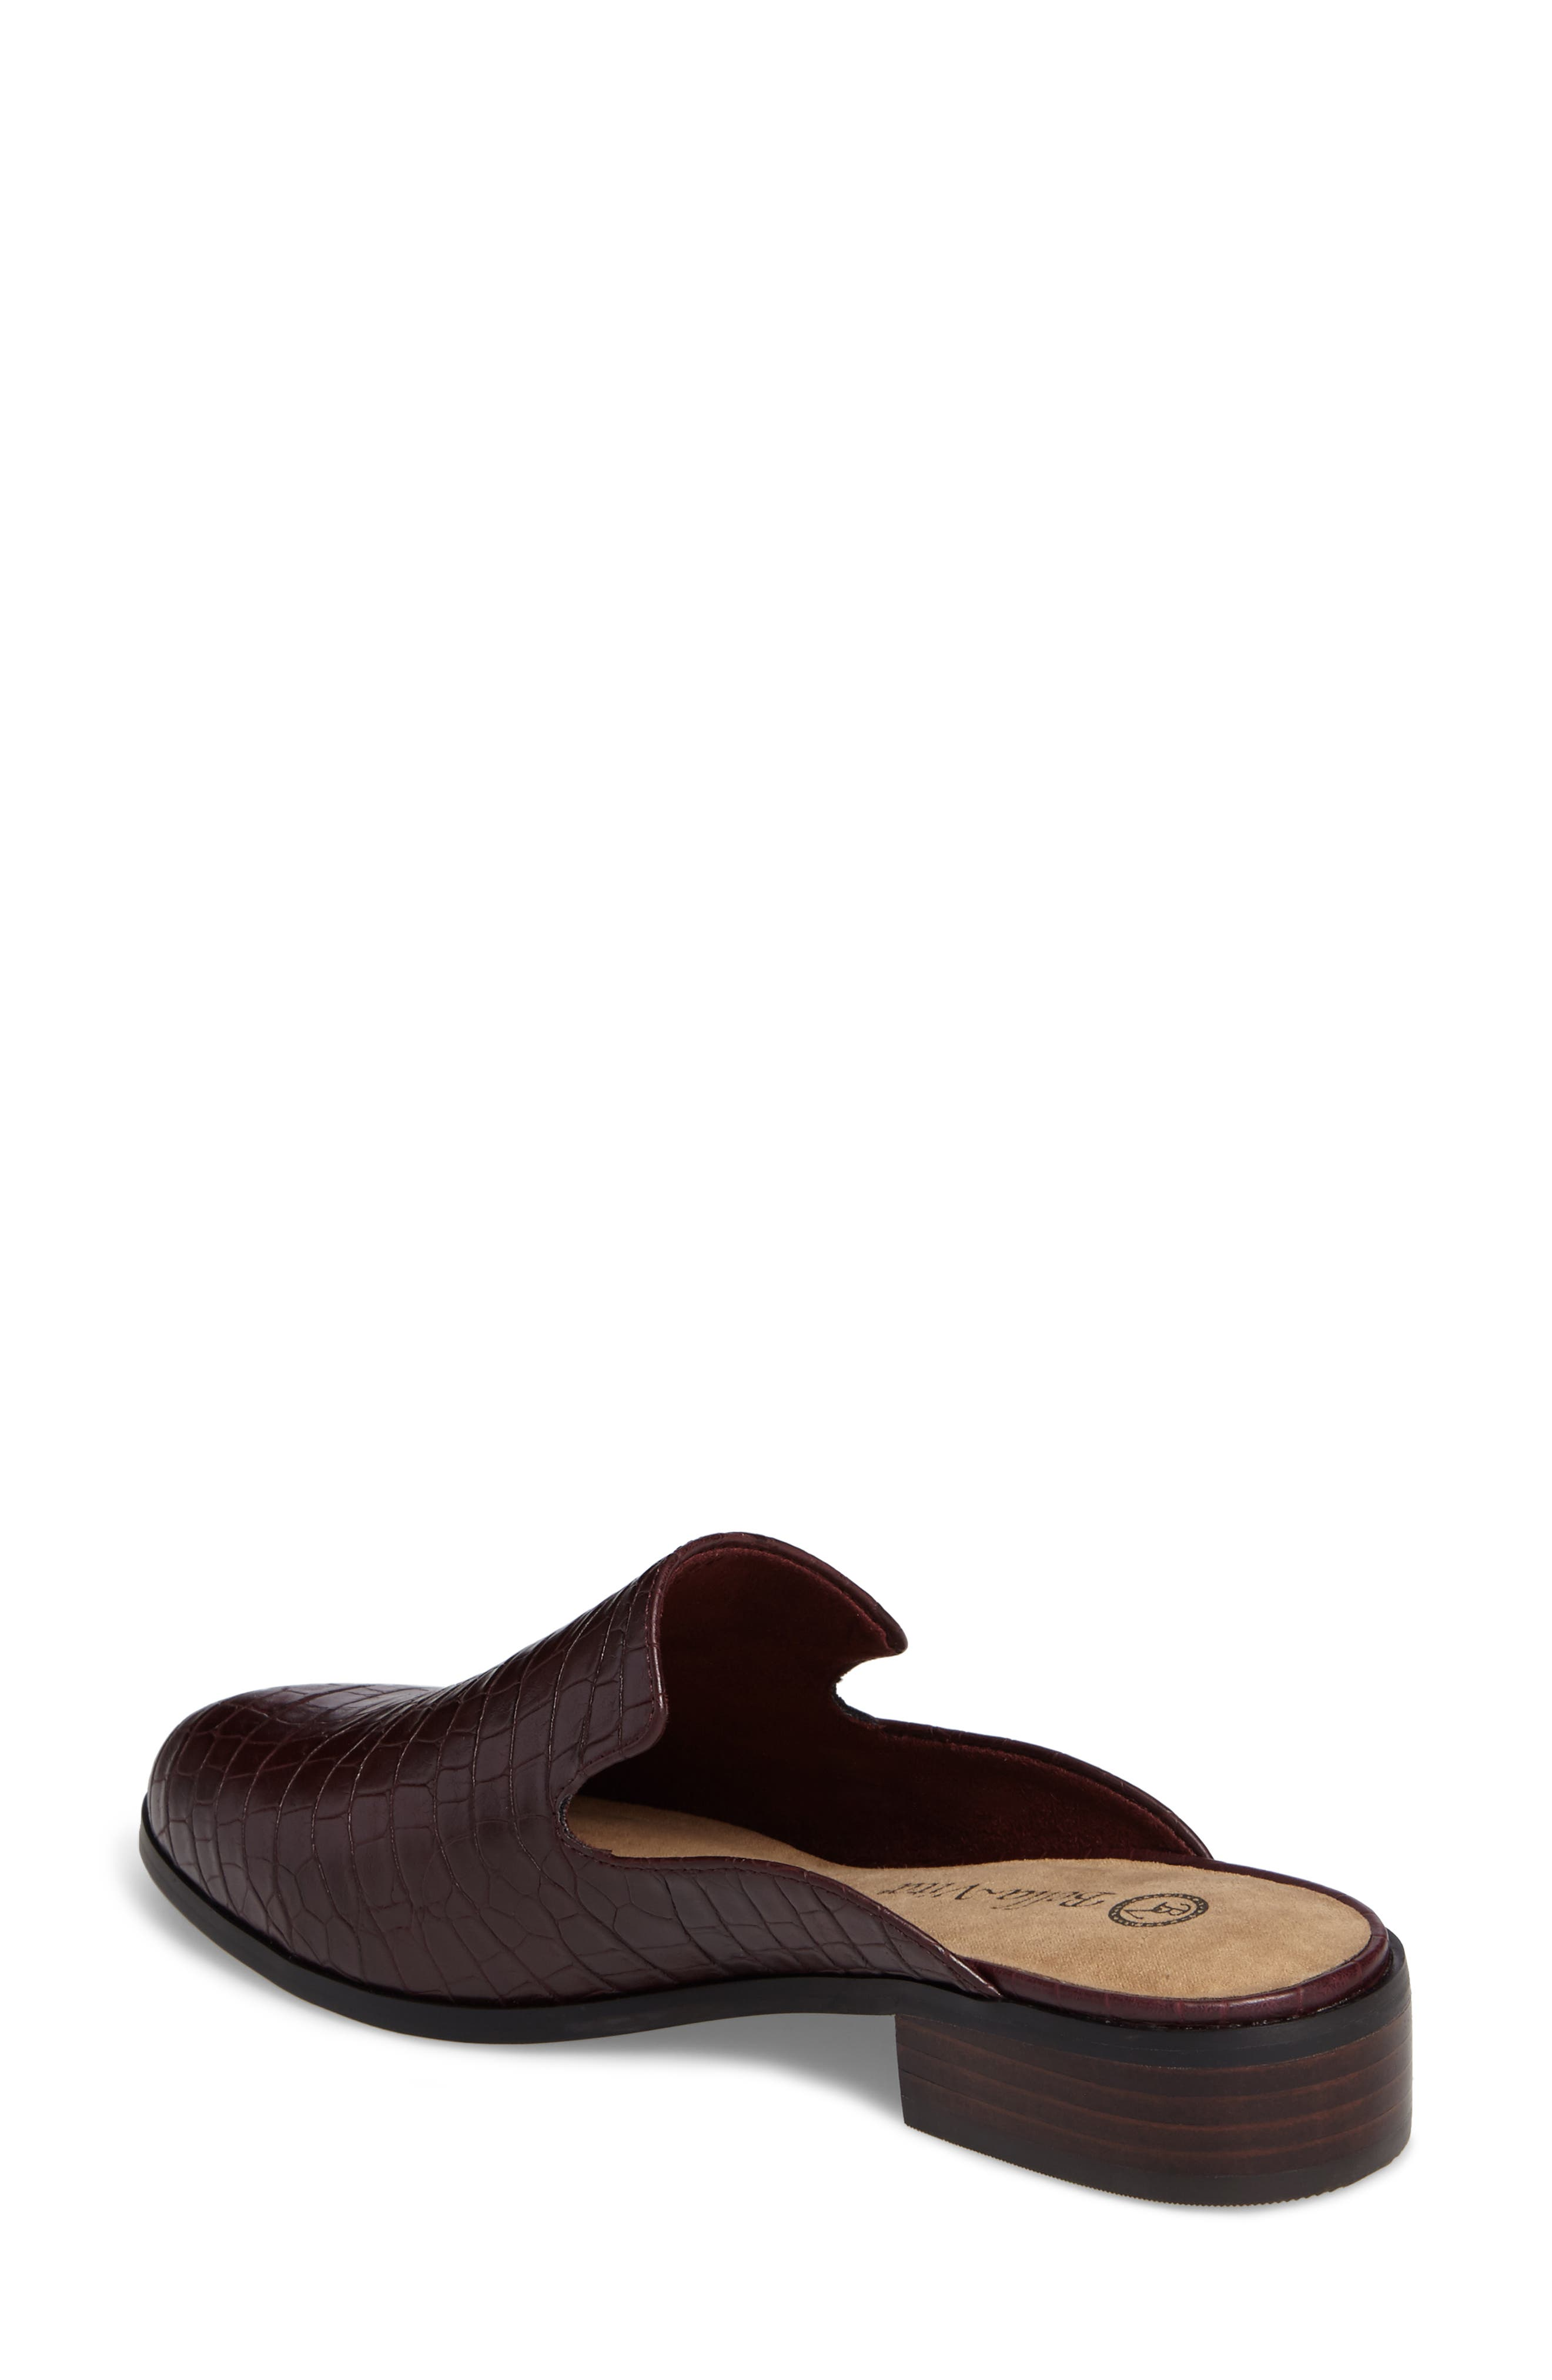 Briar II Loafer Mule,                             Alternate thumbnail 12, color,